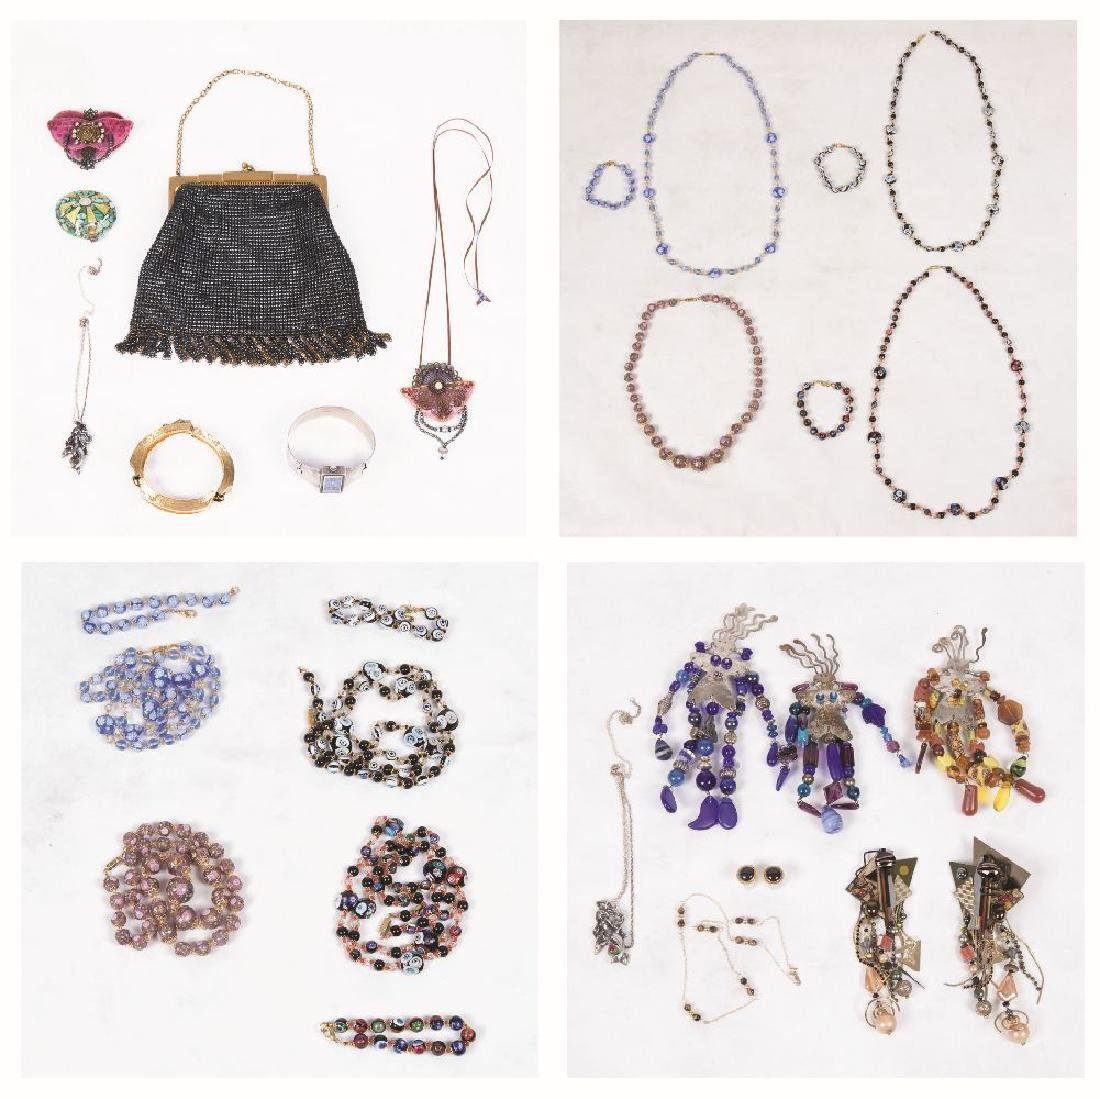 A Miscellaneous Collection of Costume Jewelry.